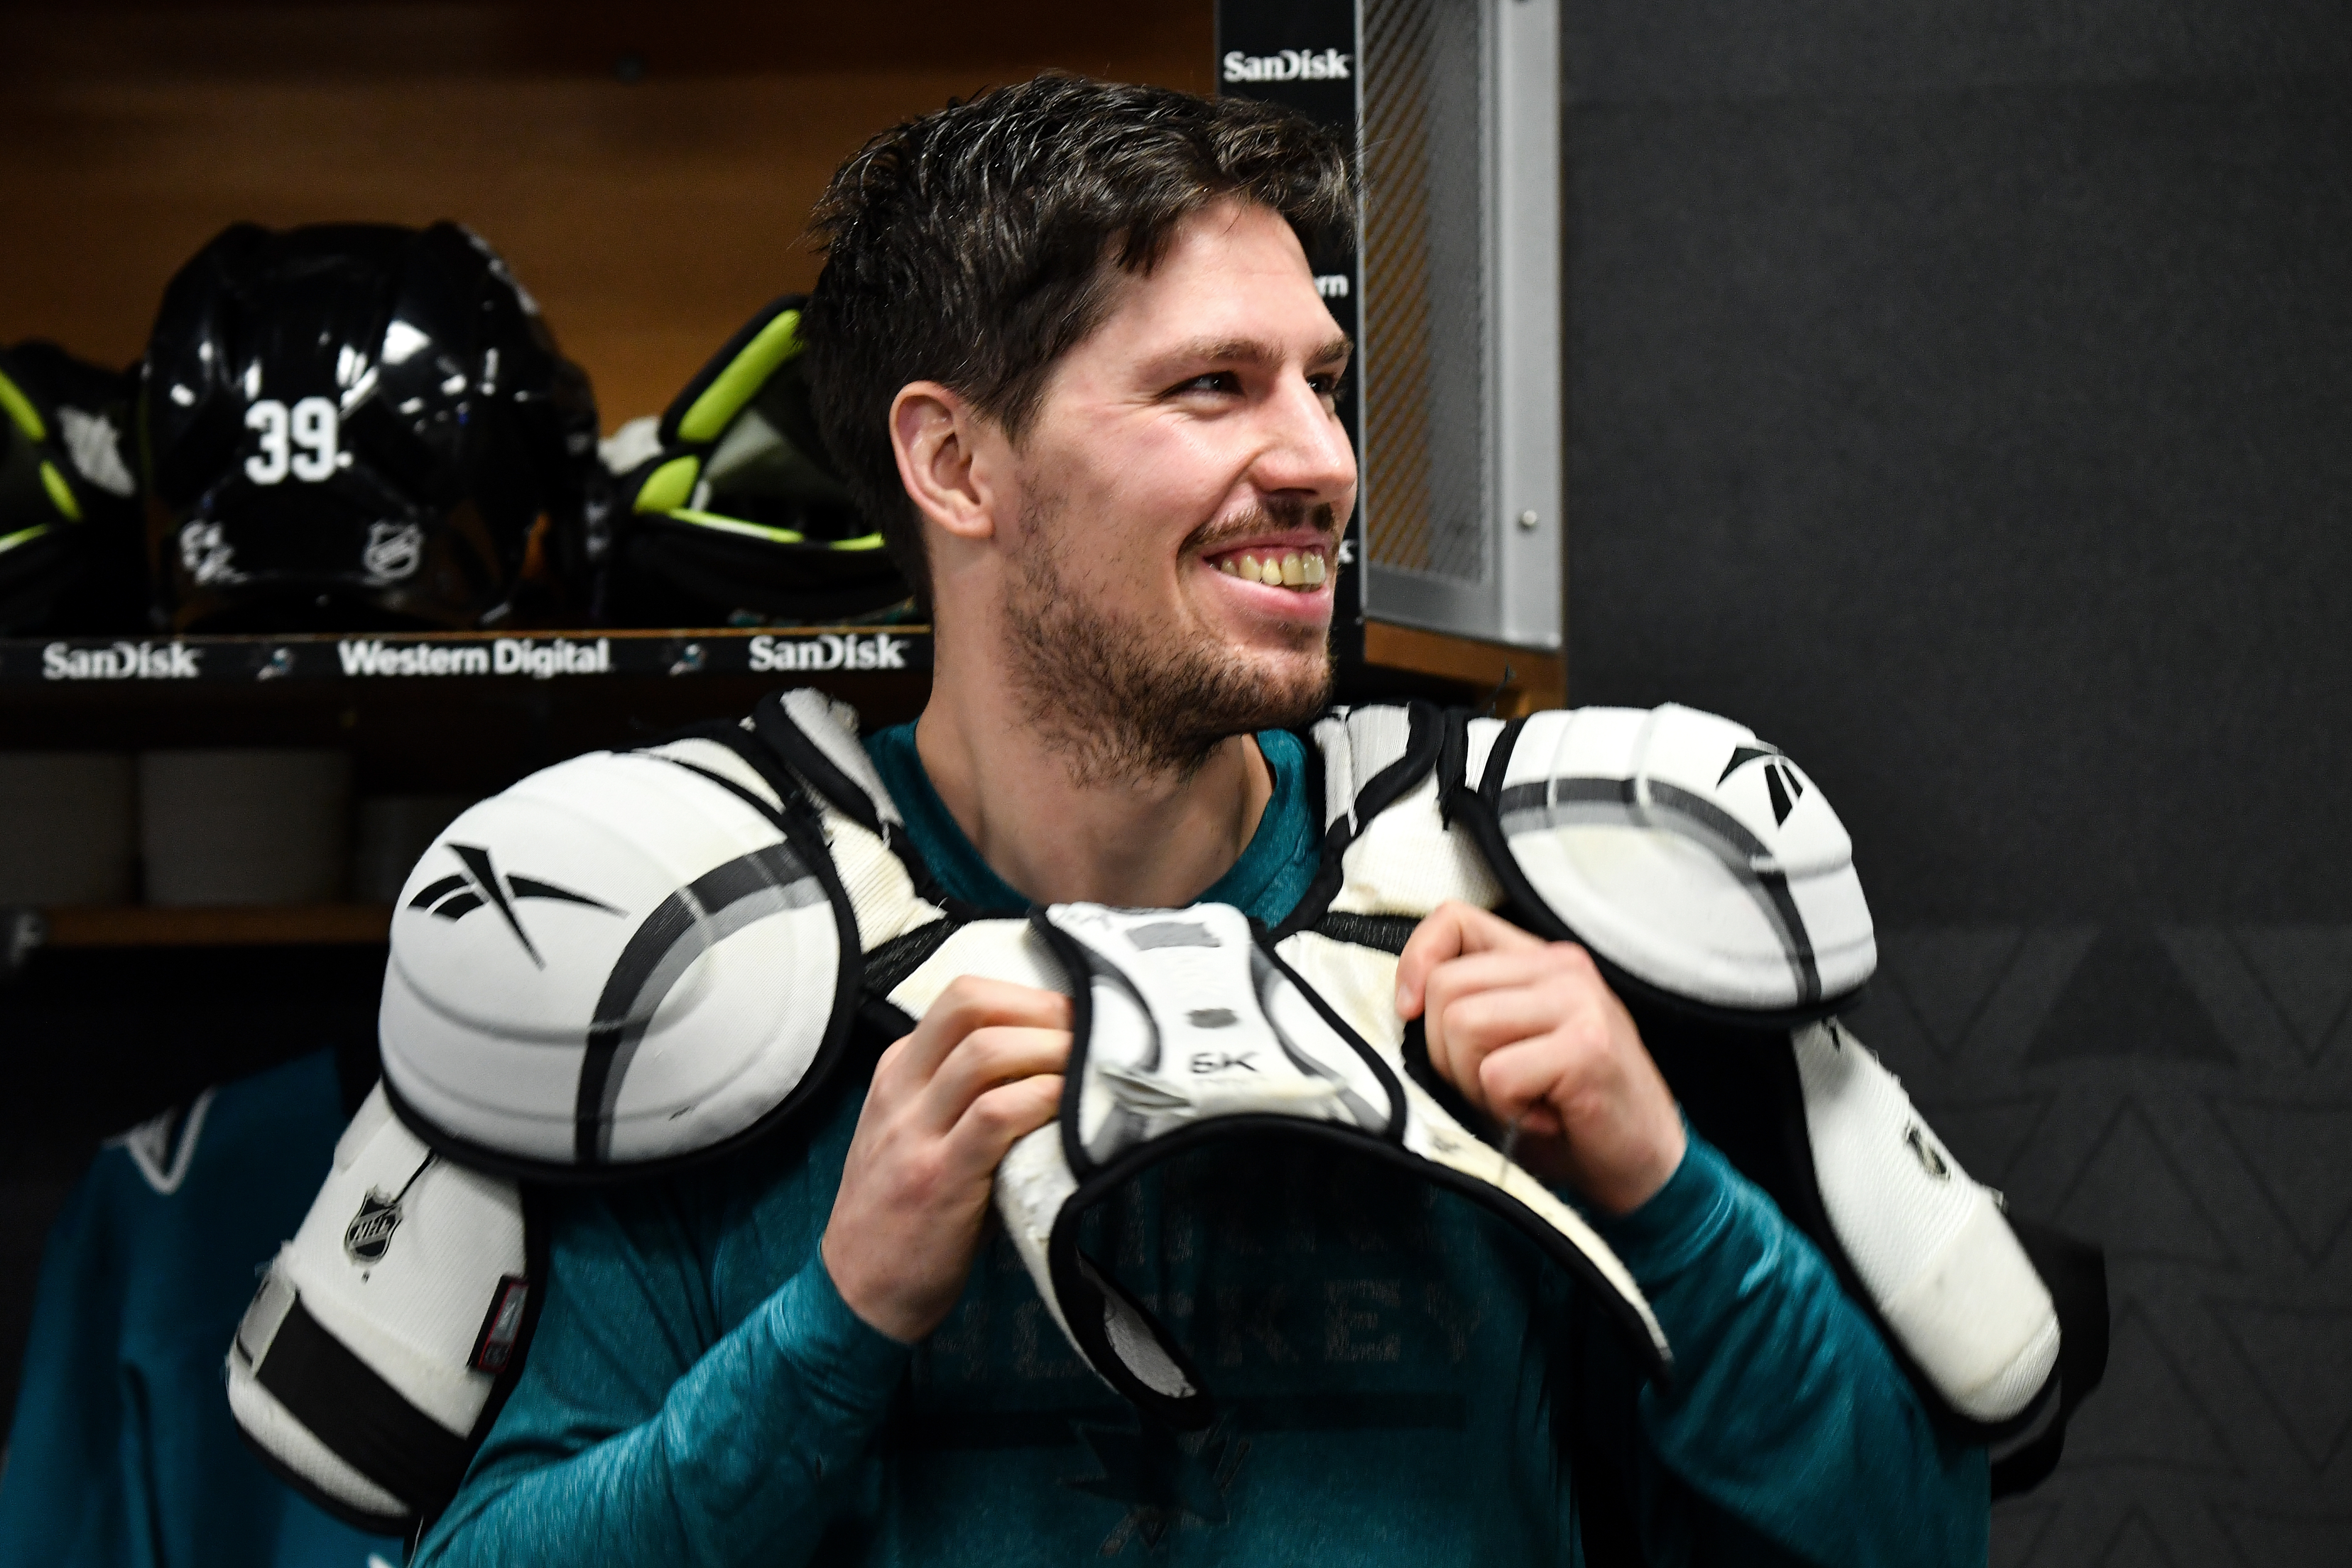 Logan Couture #39 of the San Jose Sharks prepares to take the ice for warmups in the locker room against the Ottawa Senators at SAP Center on March 7, 2020 in San Jose, California.Ottawa Senators v San Jose Sharks